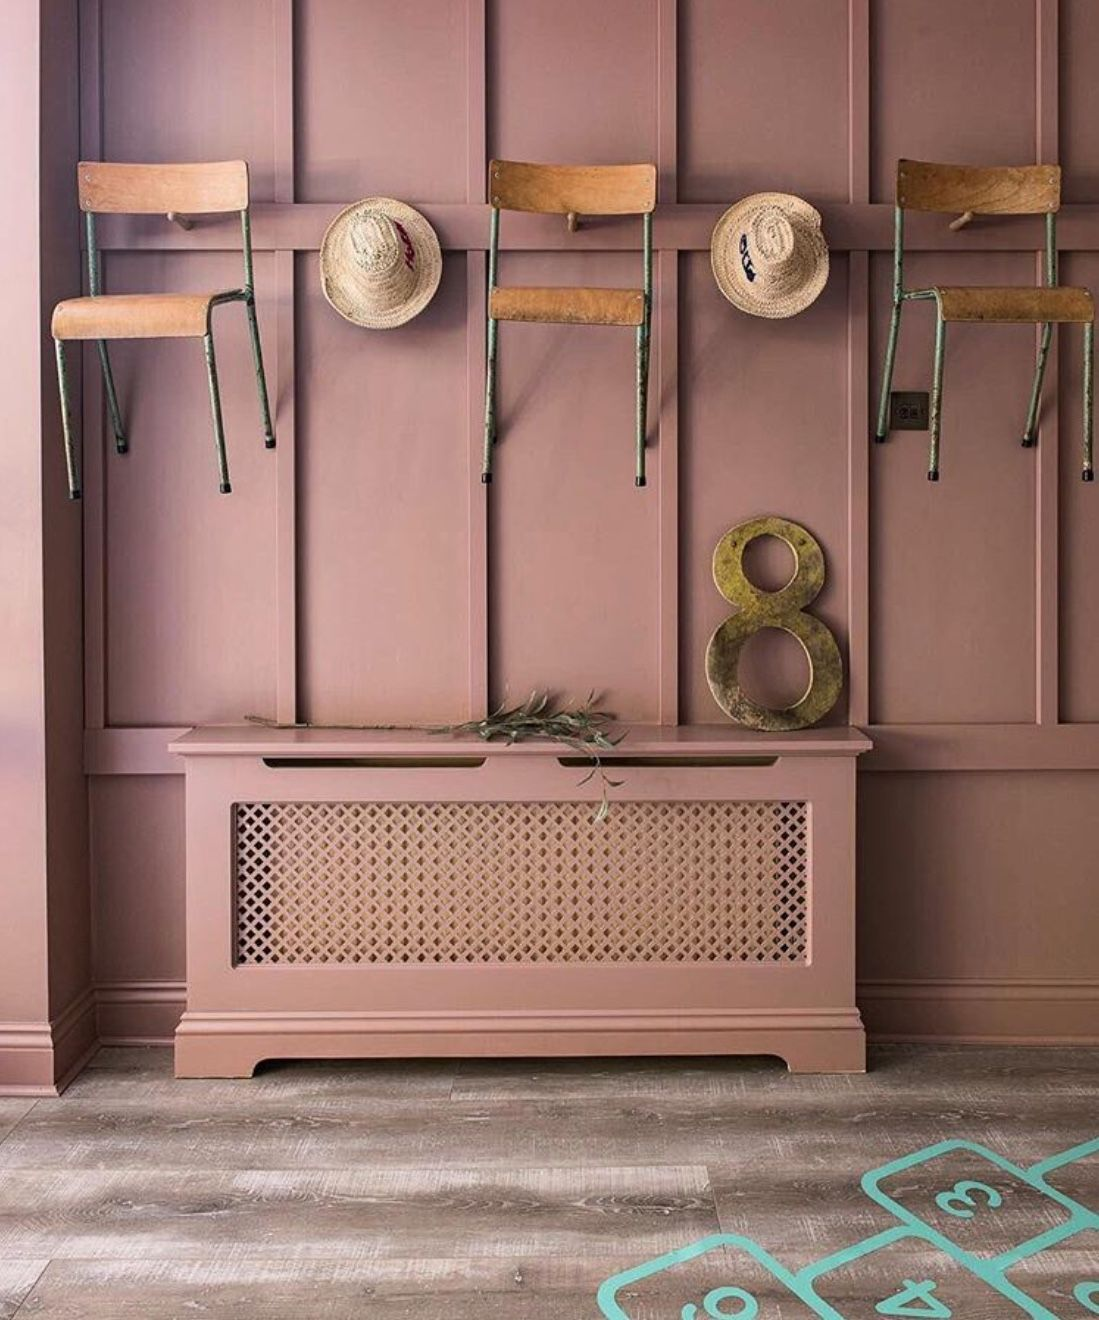 Farrow And Ball Pale Blue Bedroom: Farrow And Ball - Sulking Room Pink